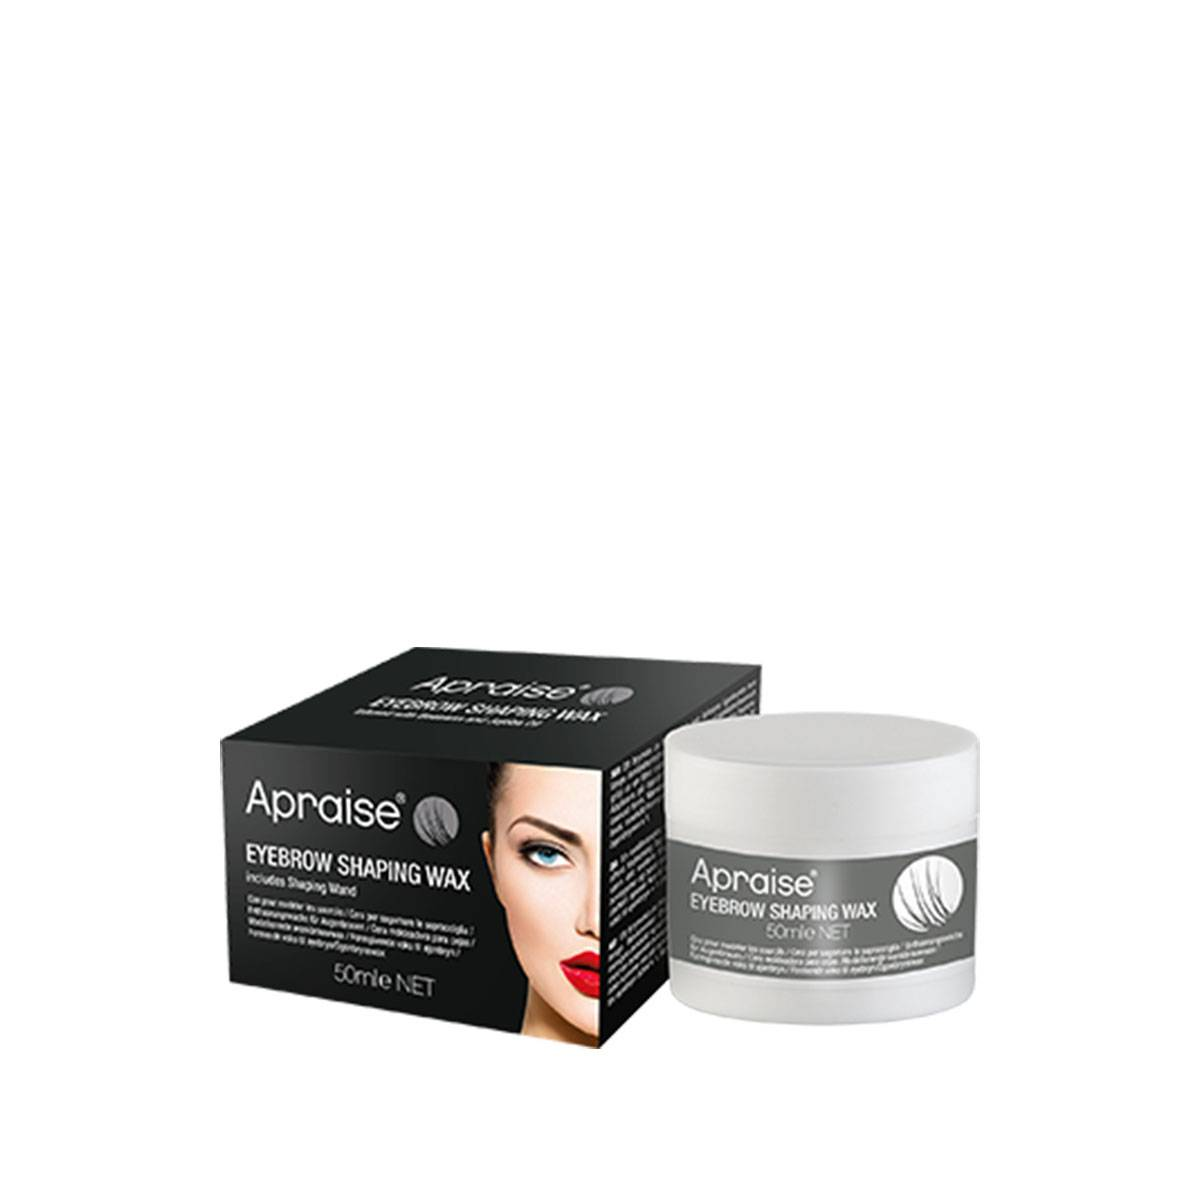 Apraise Eyebrow Shaping Wax 50ml